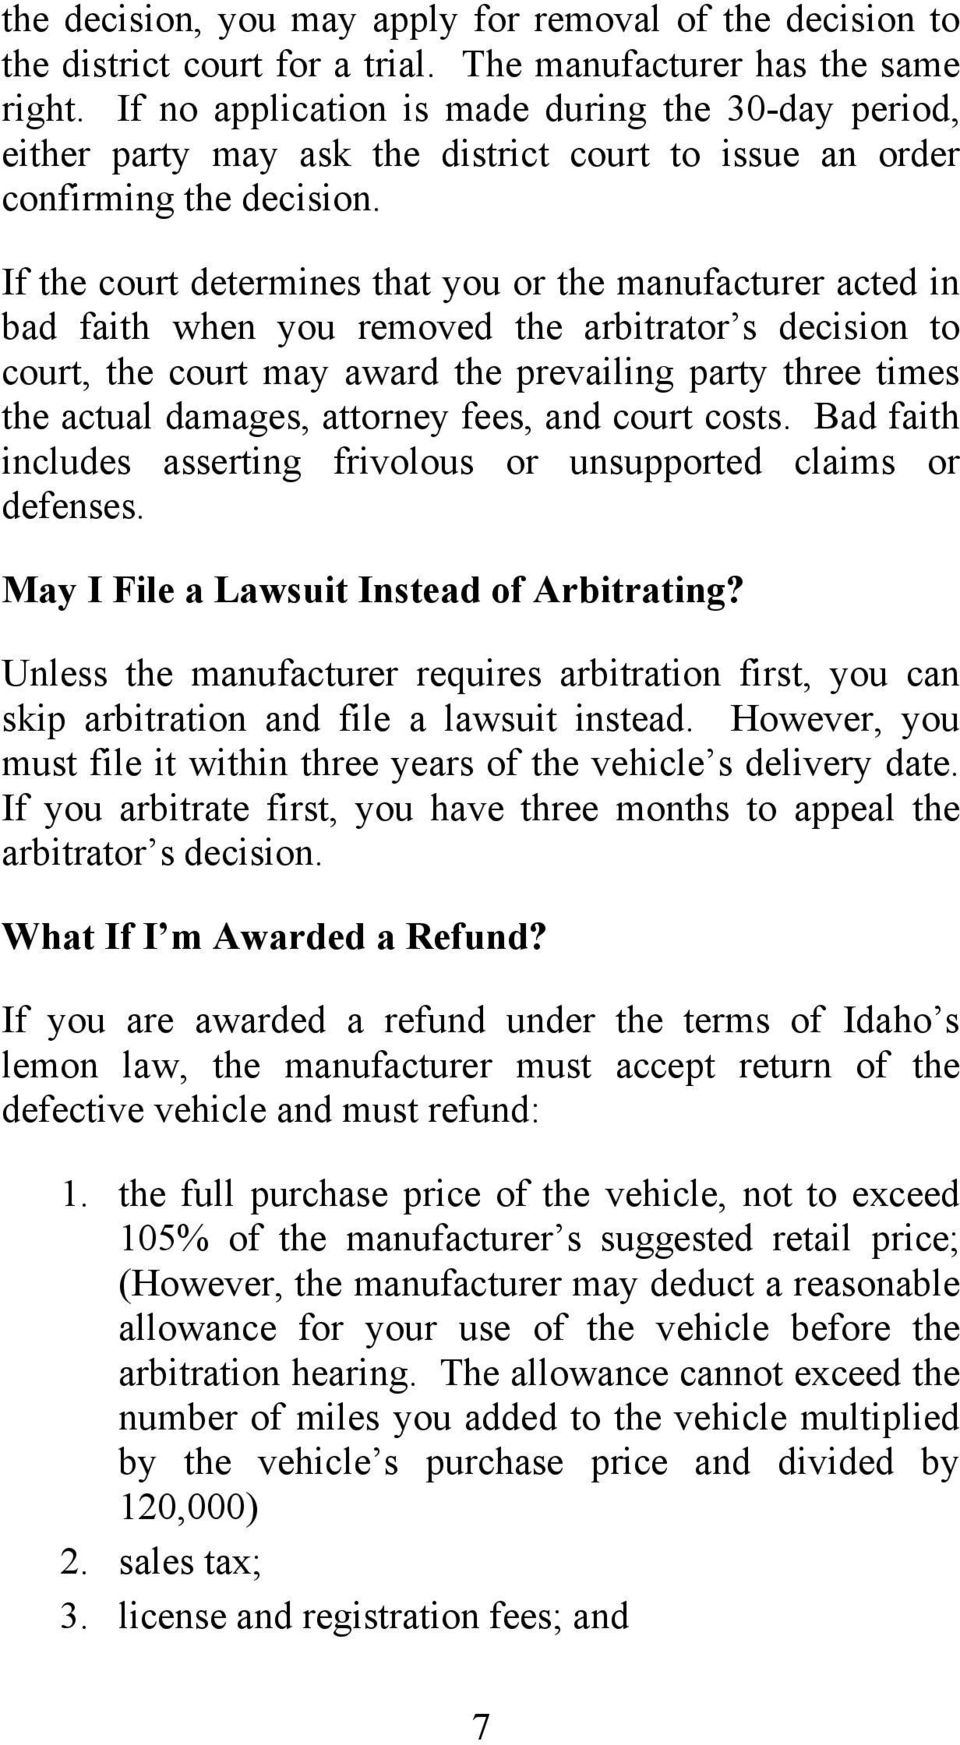 If the court determines that you or the manufacturer acted in bad faith when you removed the arbitrator s decision to court, the court may award the prevailing party three times the actual damages,